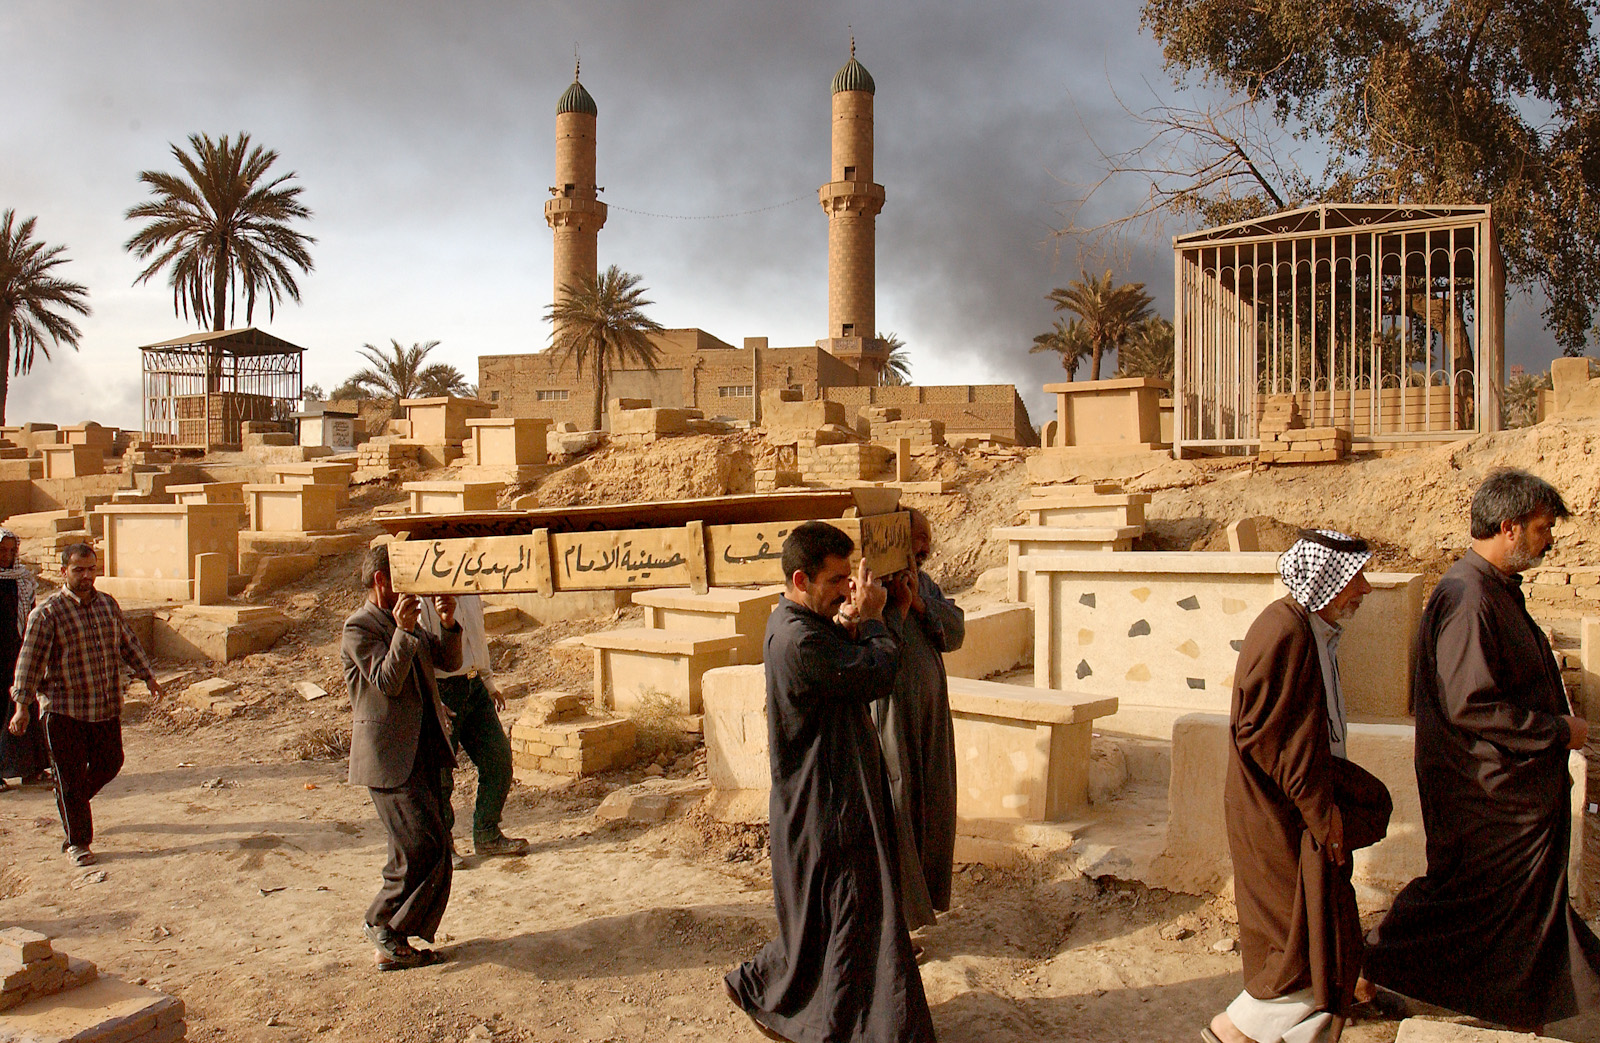 Mourners at a cemetery, Baghdad, Iraq, April 2, 2003.